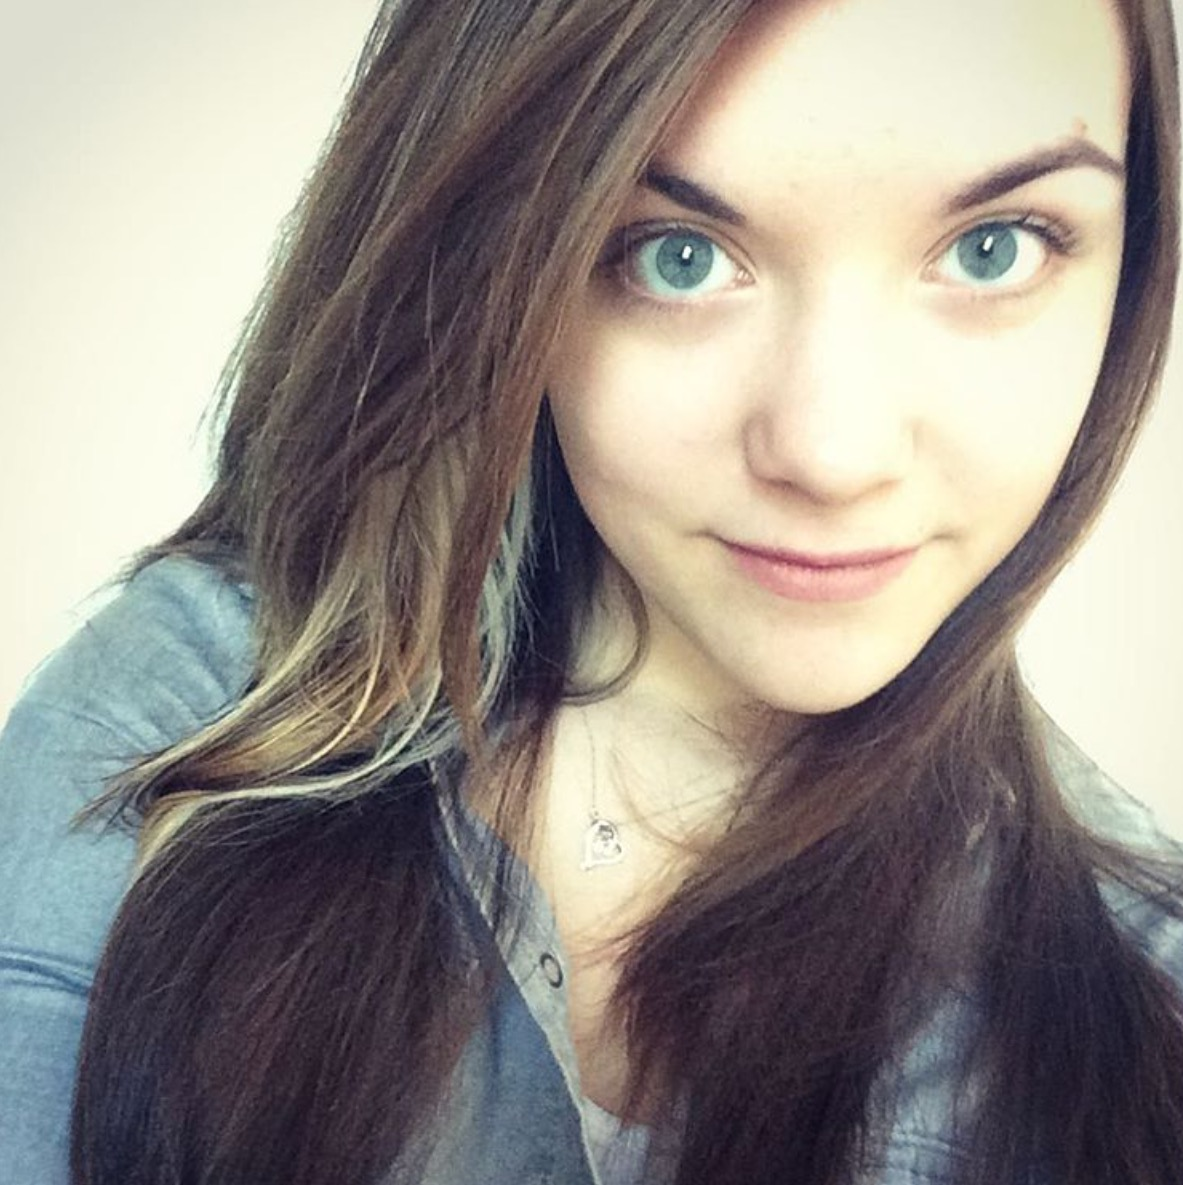 Are sqaishey quack and stampy dating